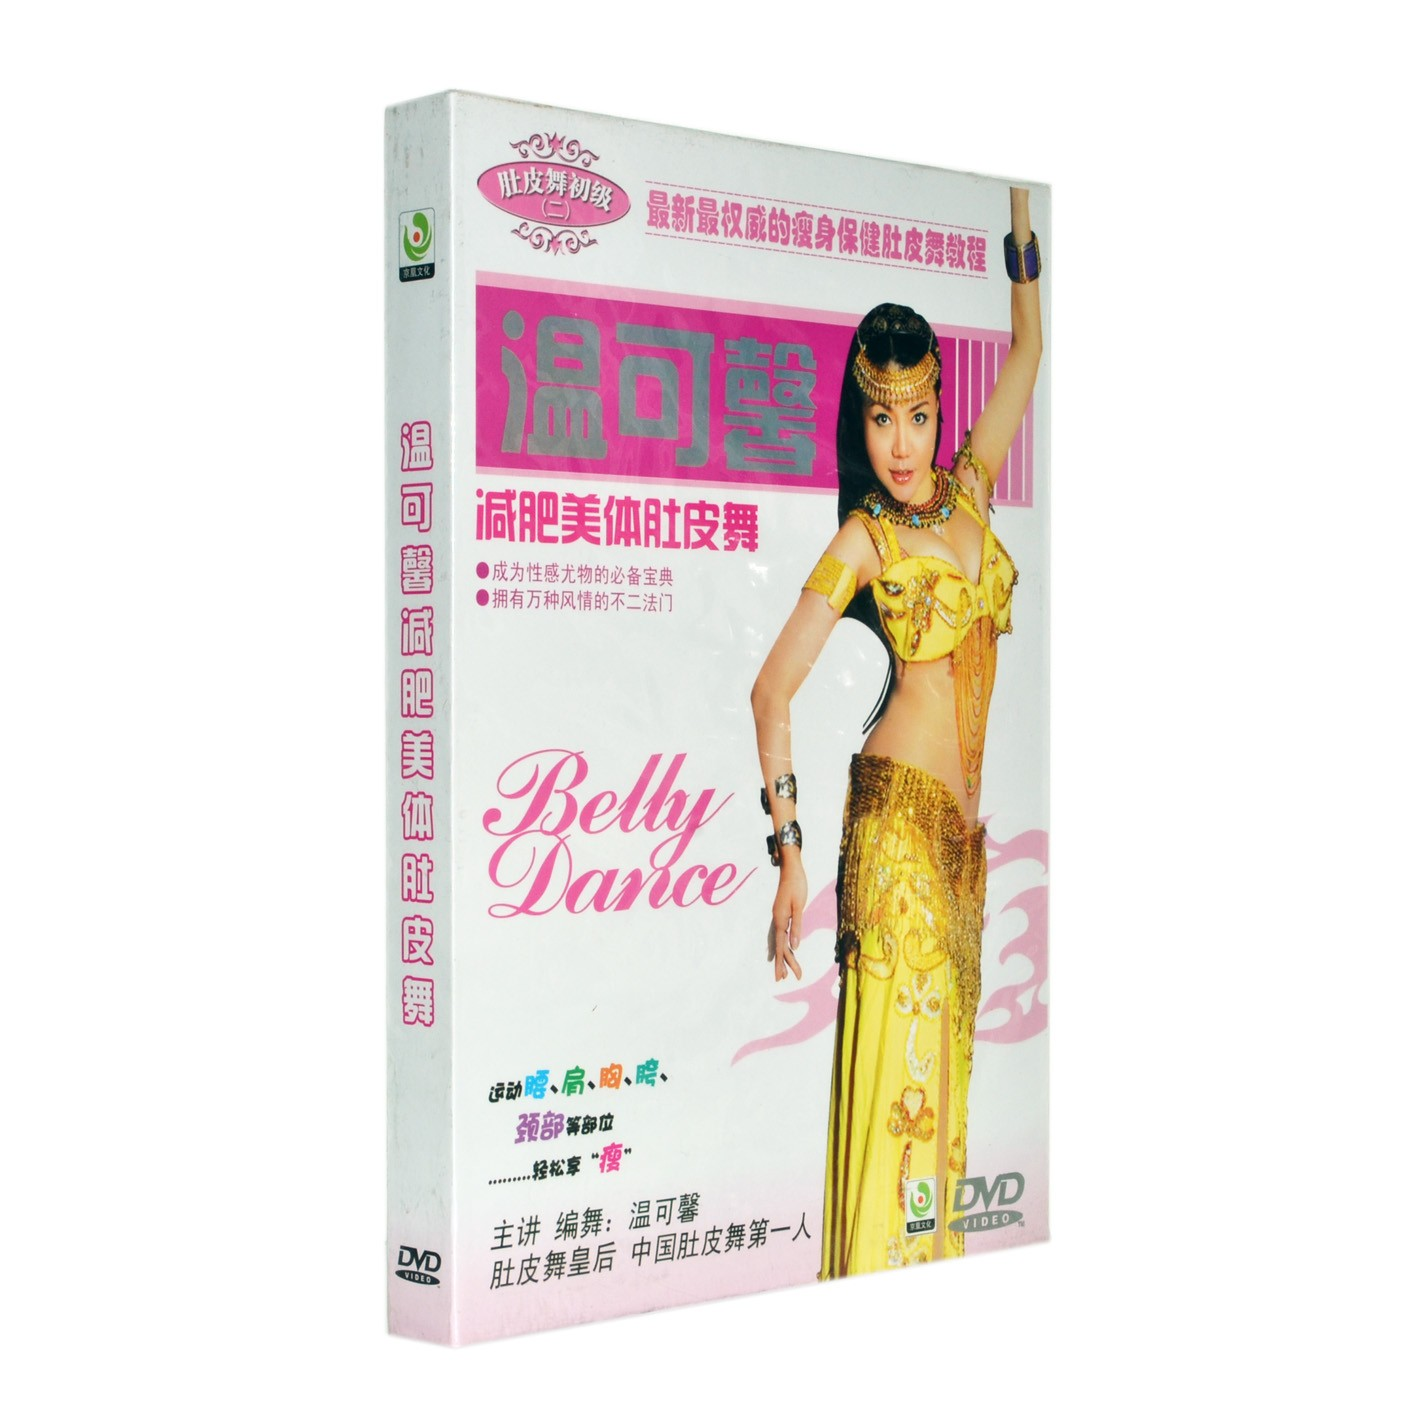 Wen kexin belly dance tutorial teaching introductory dvd video disc materials body weight loss disc genuine